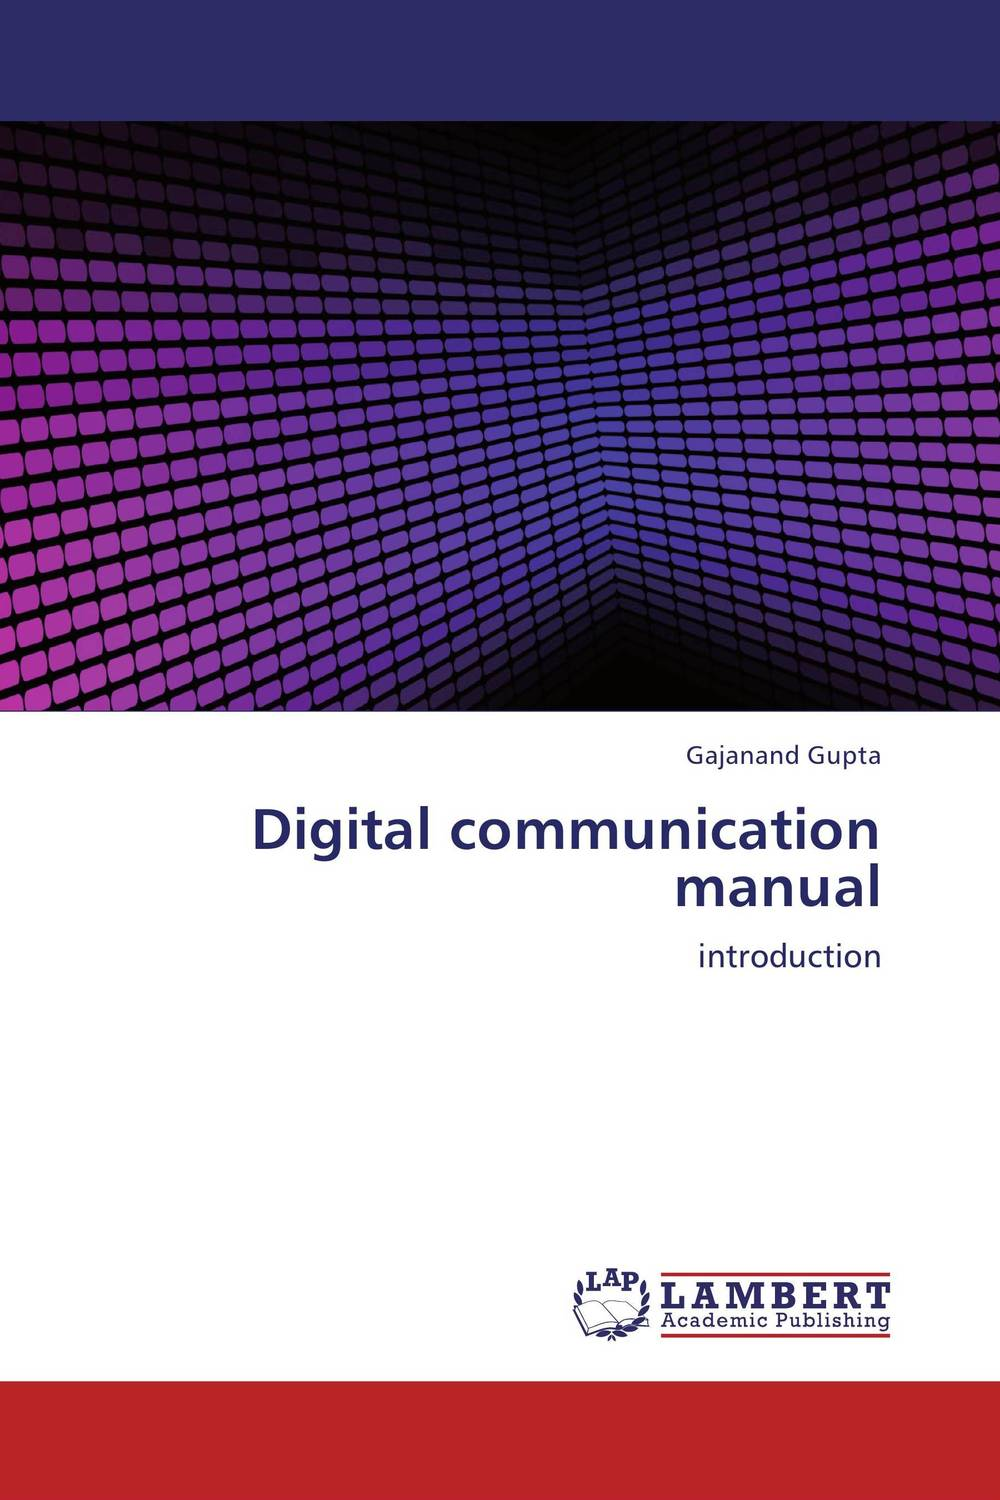 Digital communication manual thomas earnshaw часы thomas earnshaw es 8001 33 коллекция investigator